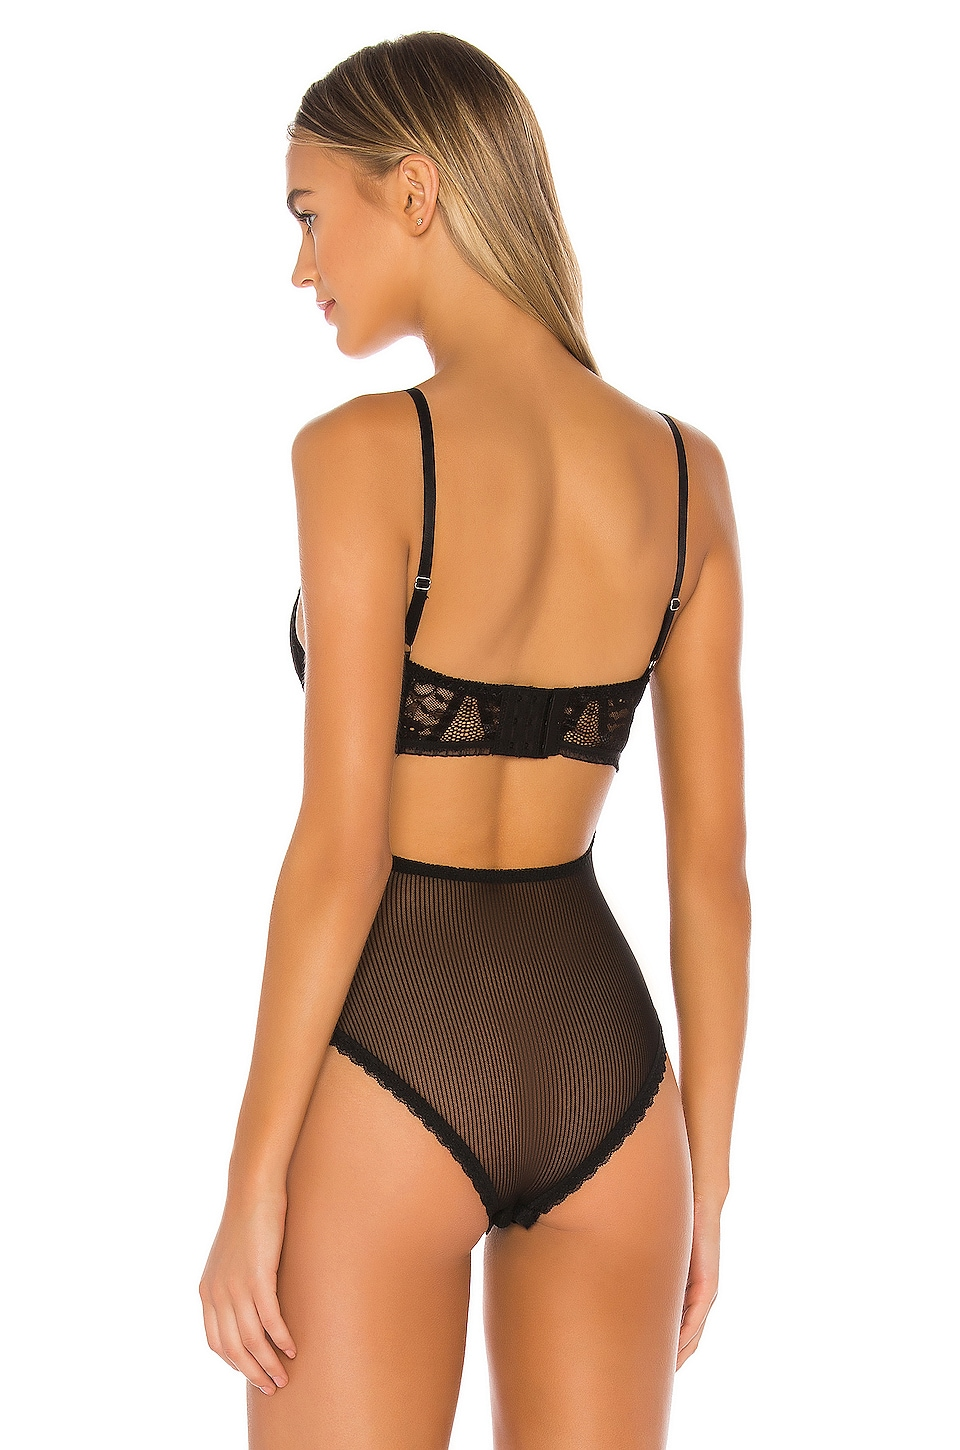 Zephyr Bodysuit, view 4, click to view large image.